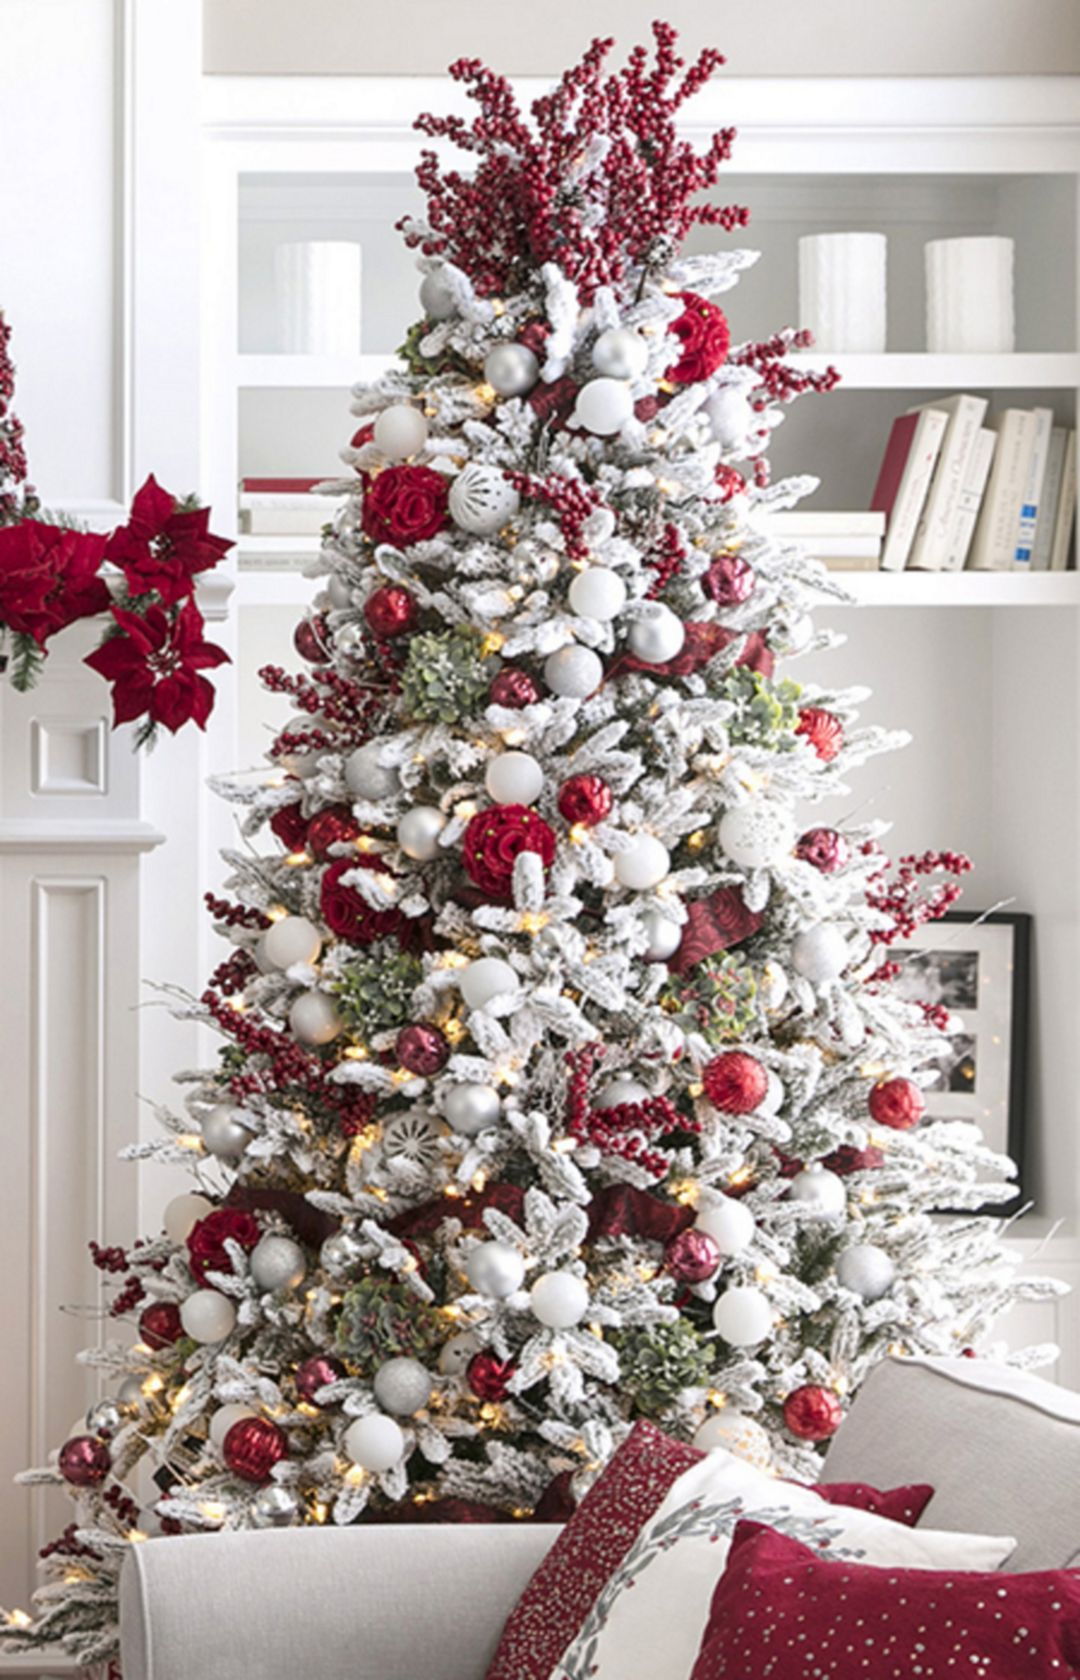 15+ Stunning Christmas Tree Decorations Ideas For Inspiration #christmastreeideas